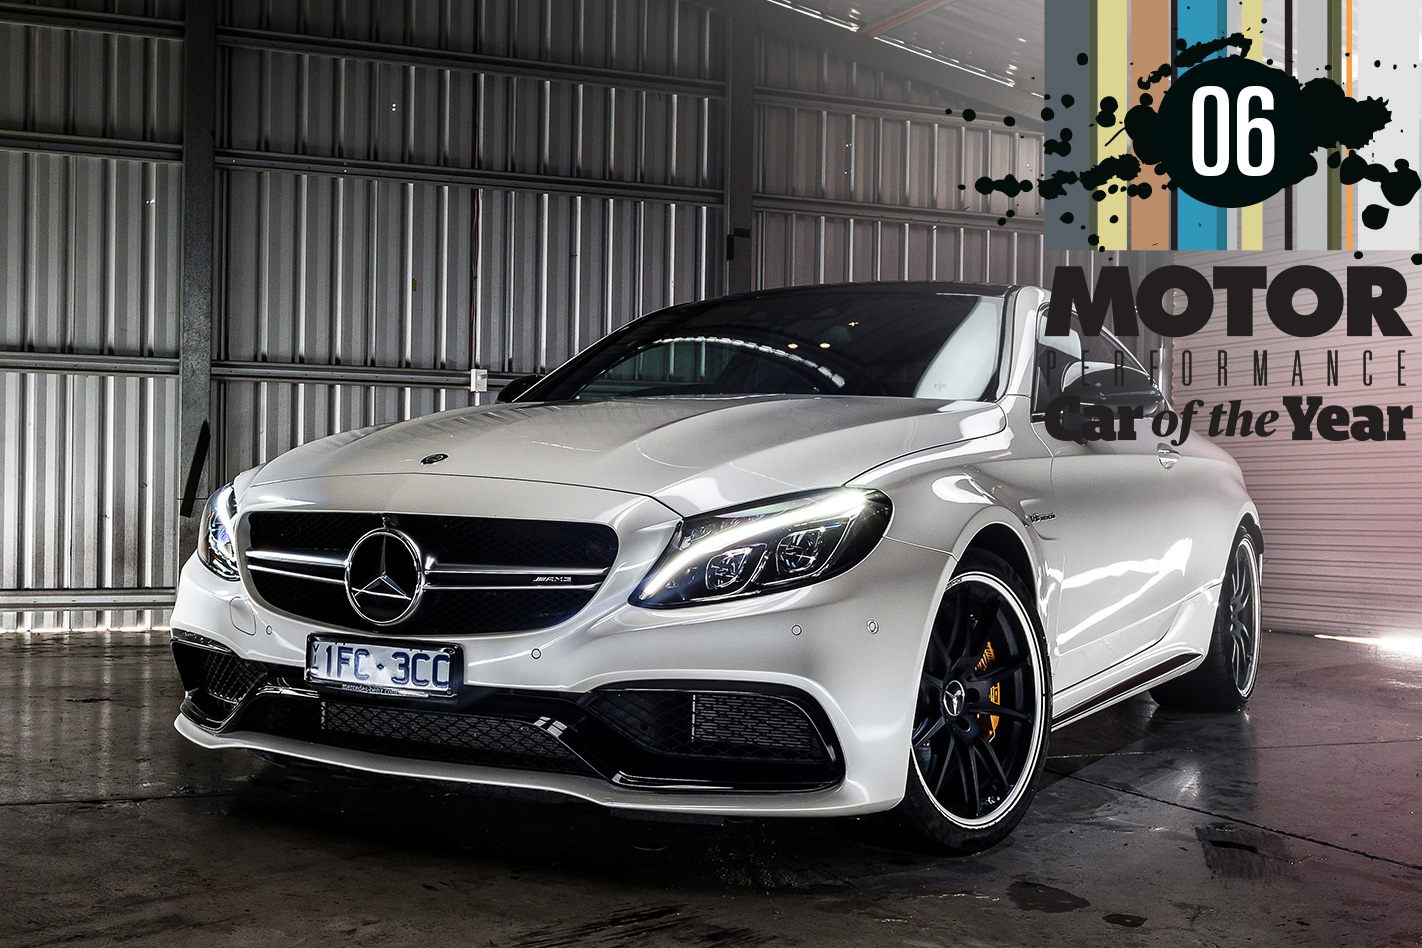 mercedes amg c63 s coupe performance car of the year 2017 6. Black Bedroom Furniture Sets. Home Design Ideas